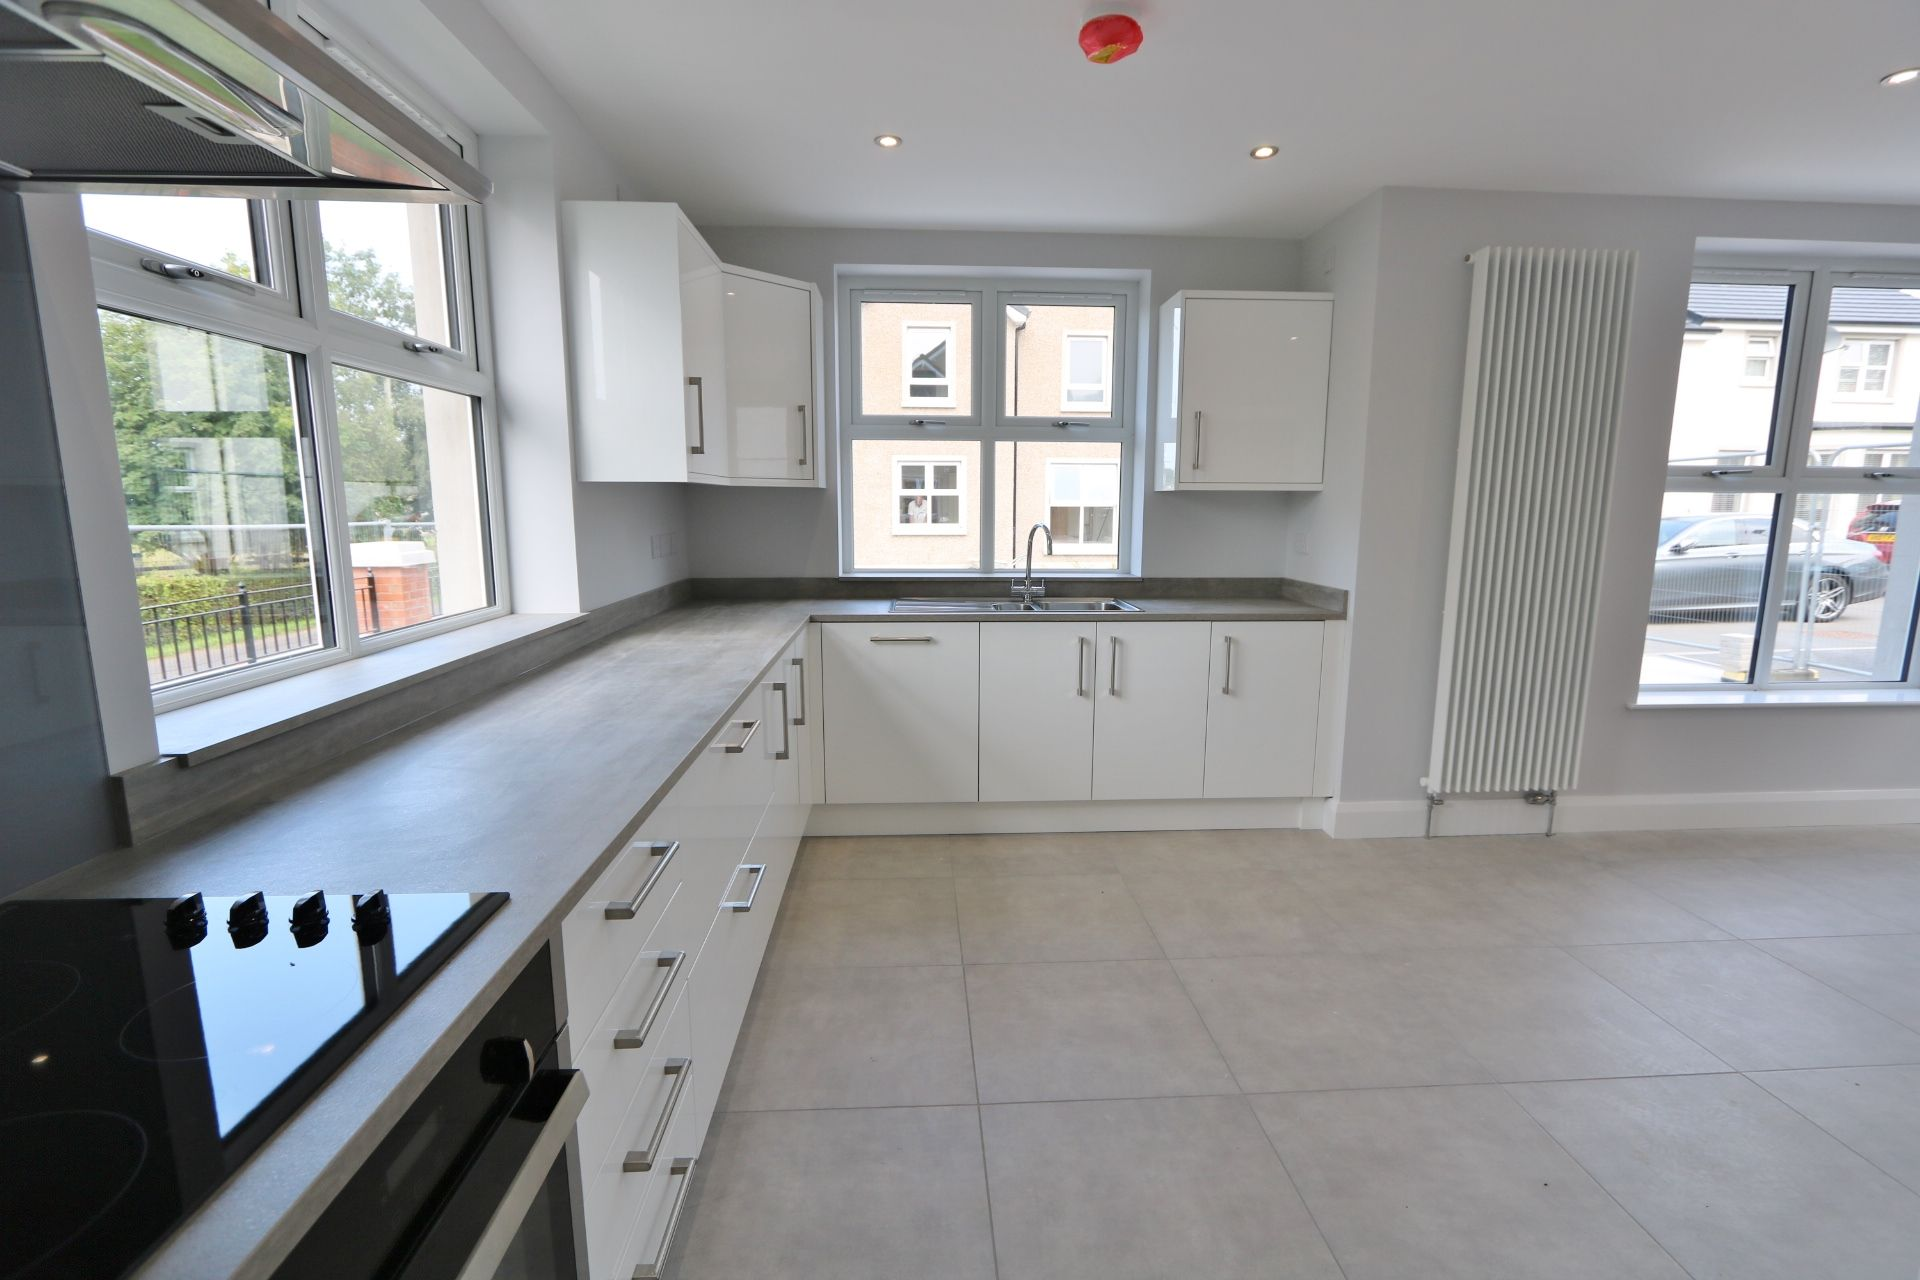 3 bedroom detached house For Sale in Milltown - Photograph 4